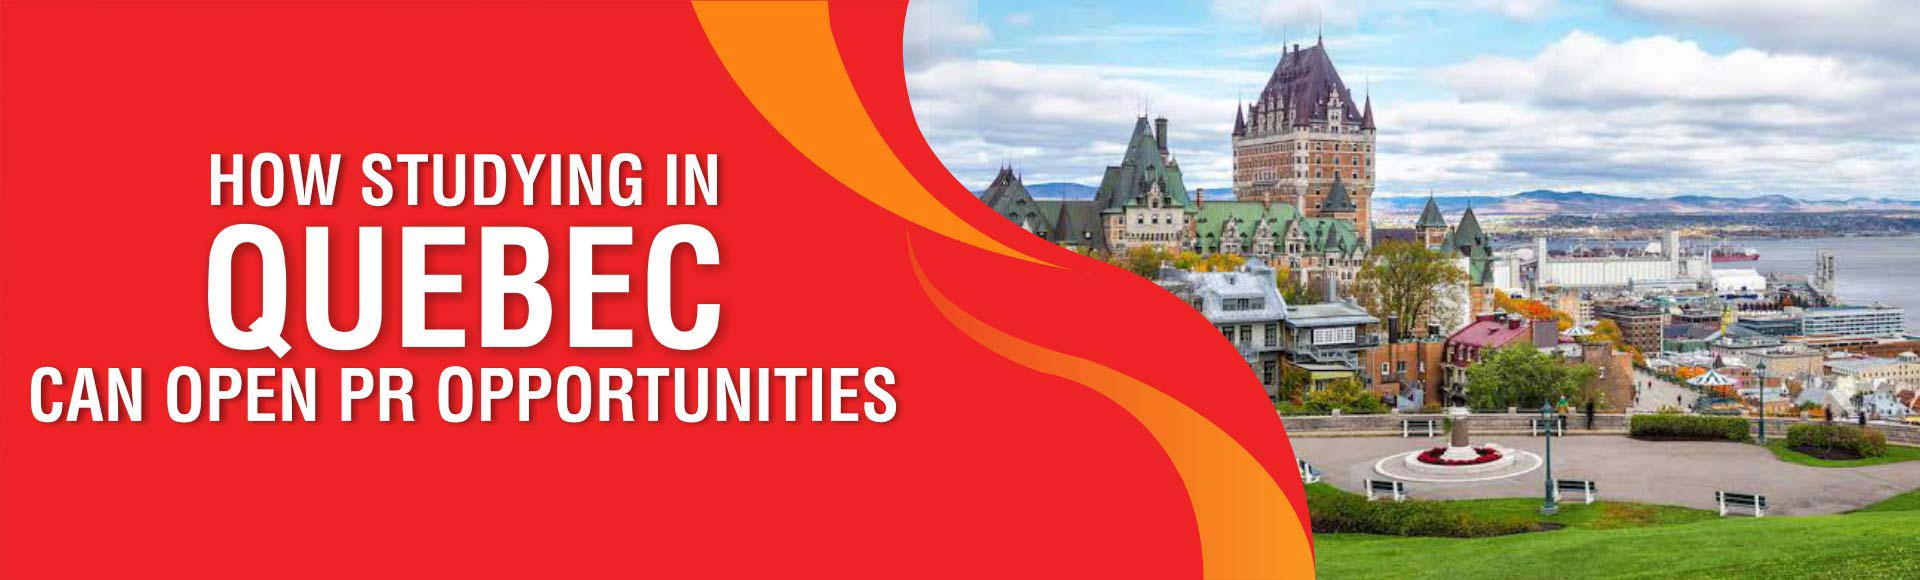 How studying in Quebec can open PR opportunities